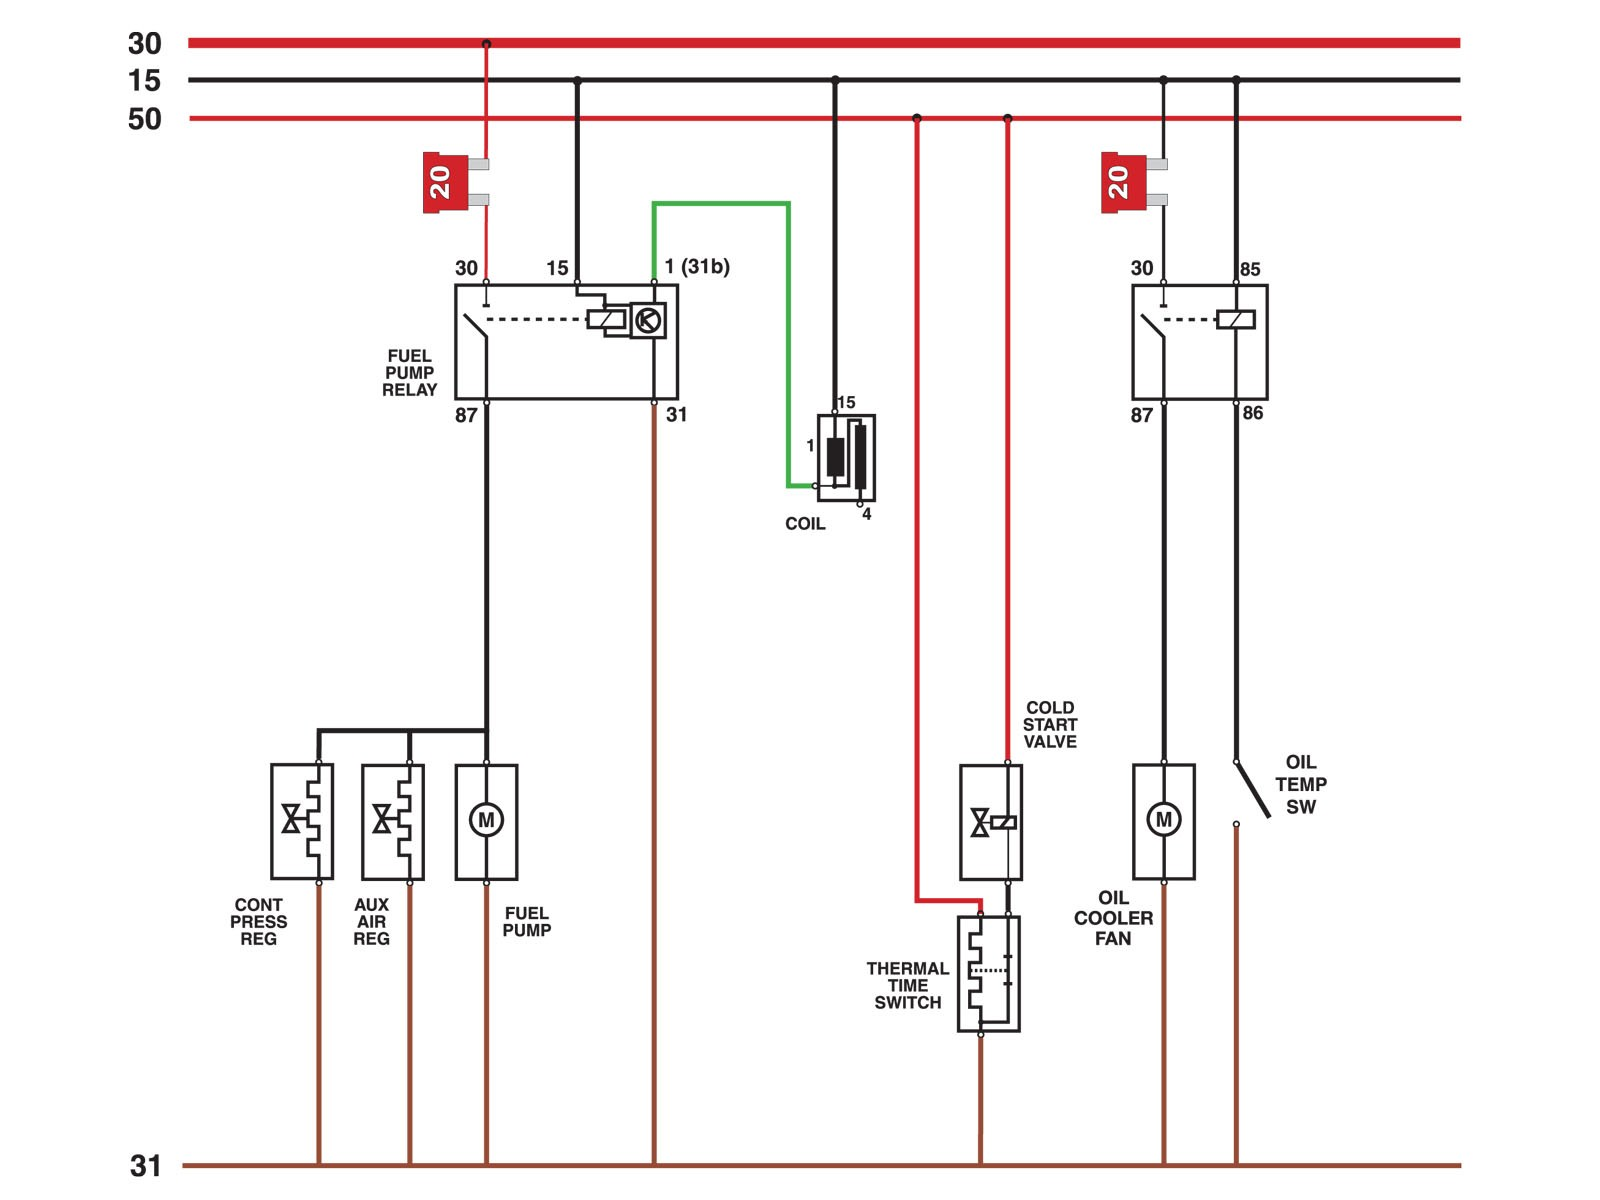 Wiring Diagram for An Electric Fuel Pump and Relay Fuel Sending Unit Wiring Diagram Blurts Of Wiring Diagram for An Electric Fuel Pump and Relay